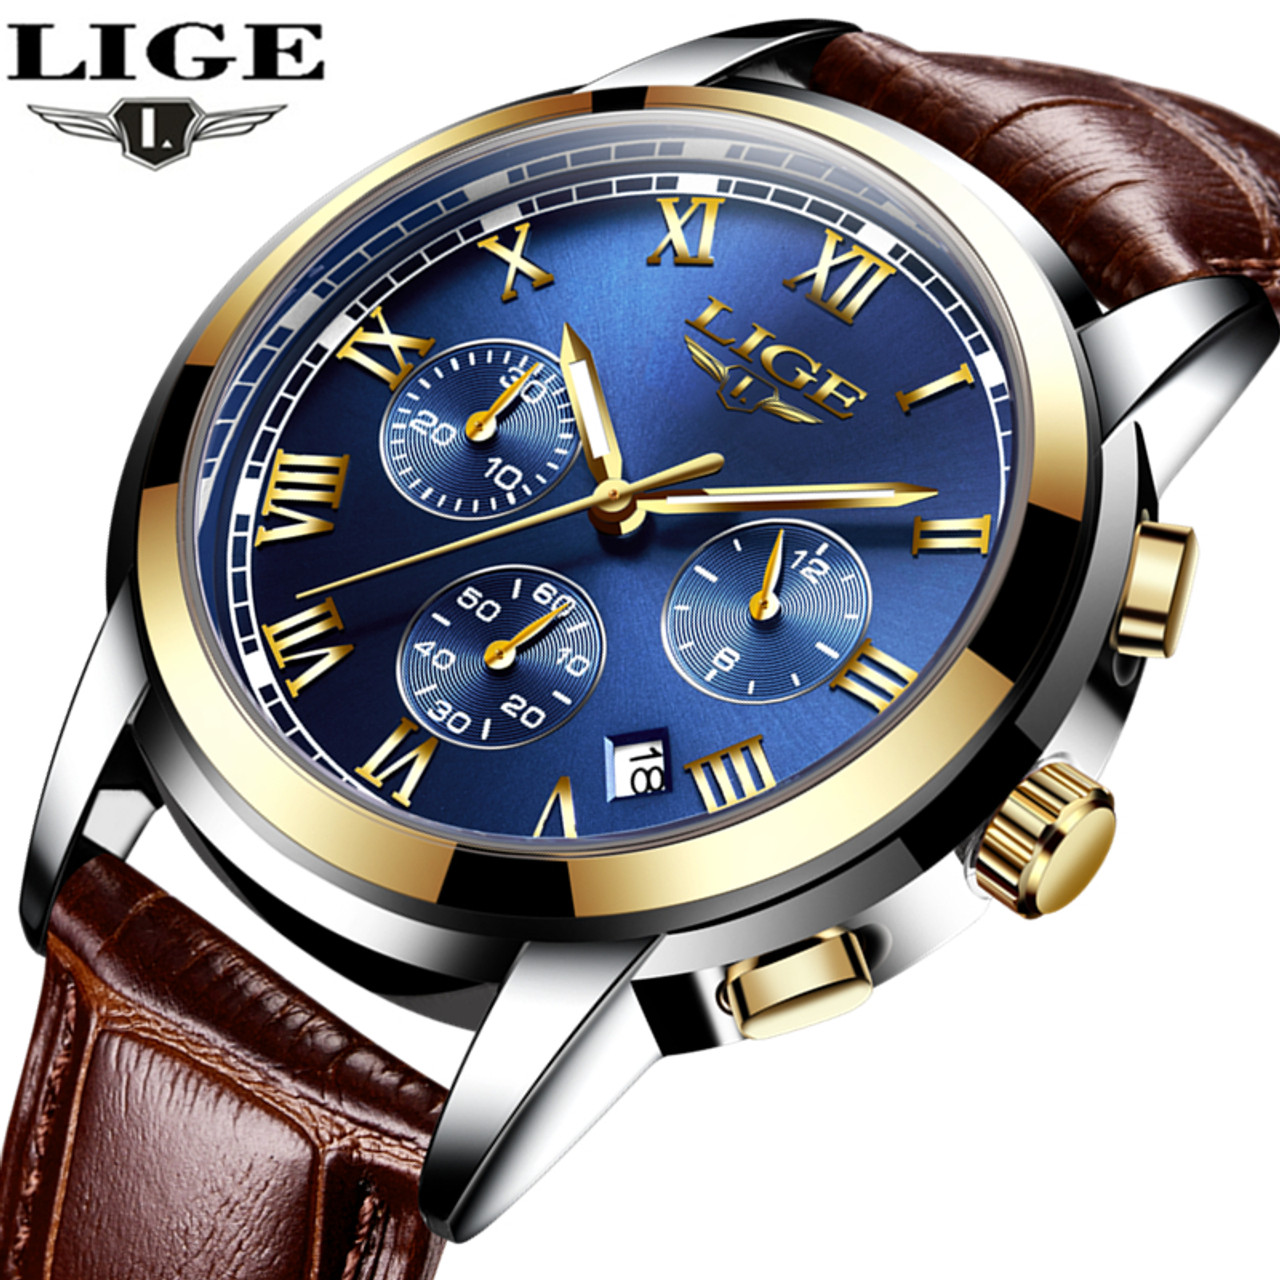 a2cb76b1aeb LIGE Mens Watches Top Brand Luxury Leather Casual Quartz Watch Men Military  Sport Waterproof Clock Gold ...